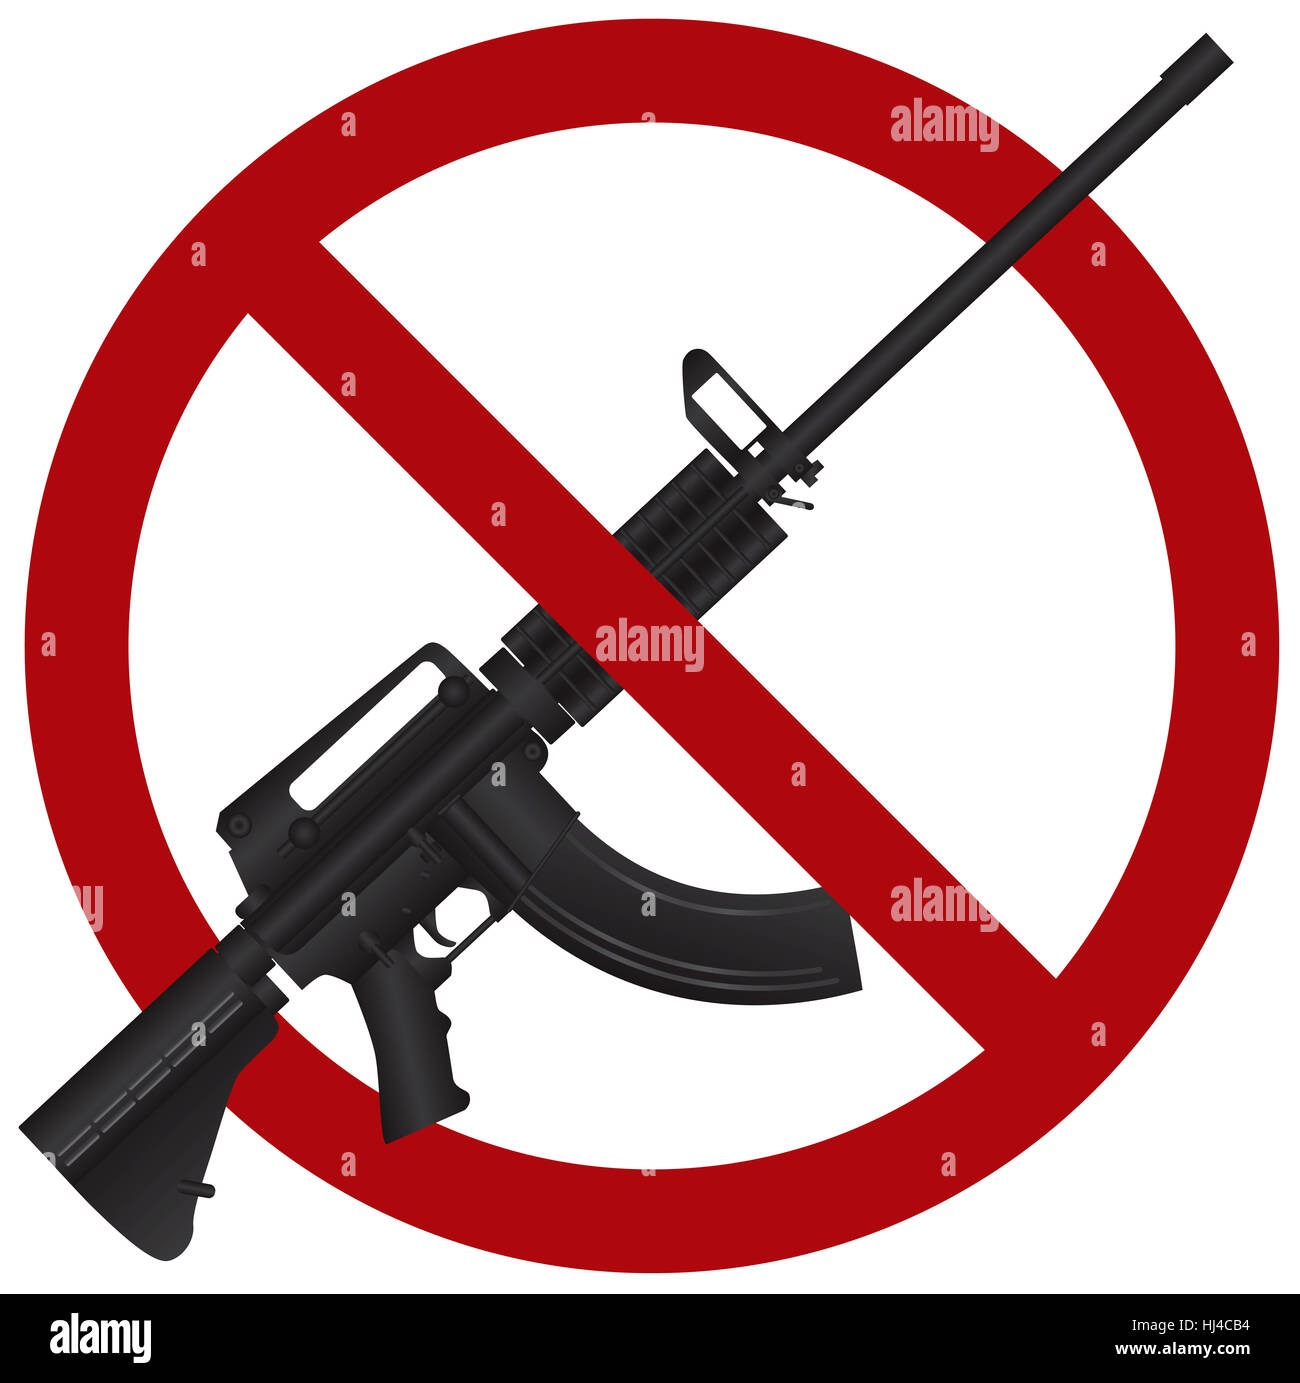 new, law, rifle, arm, weapon, gun, firearm, ban, assault, pictogram, symbol, - Stock Image